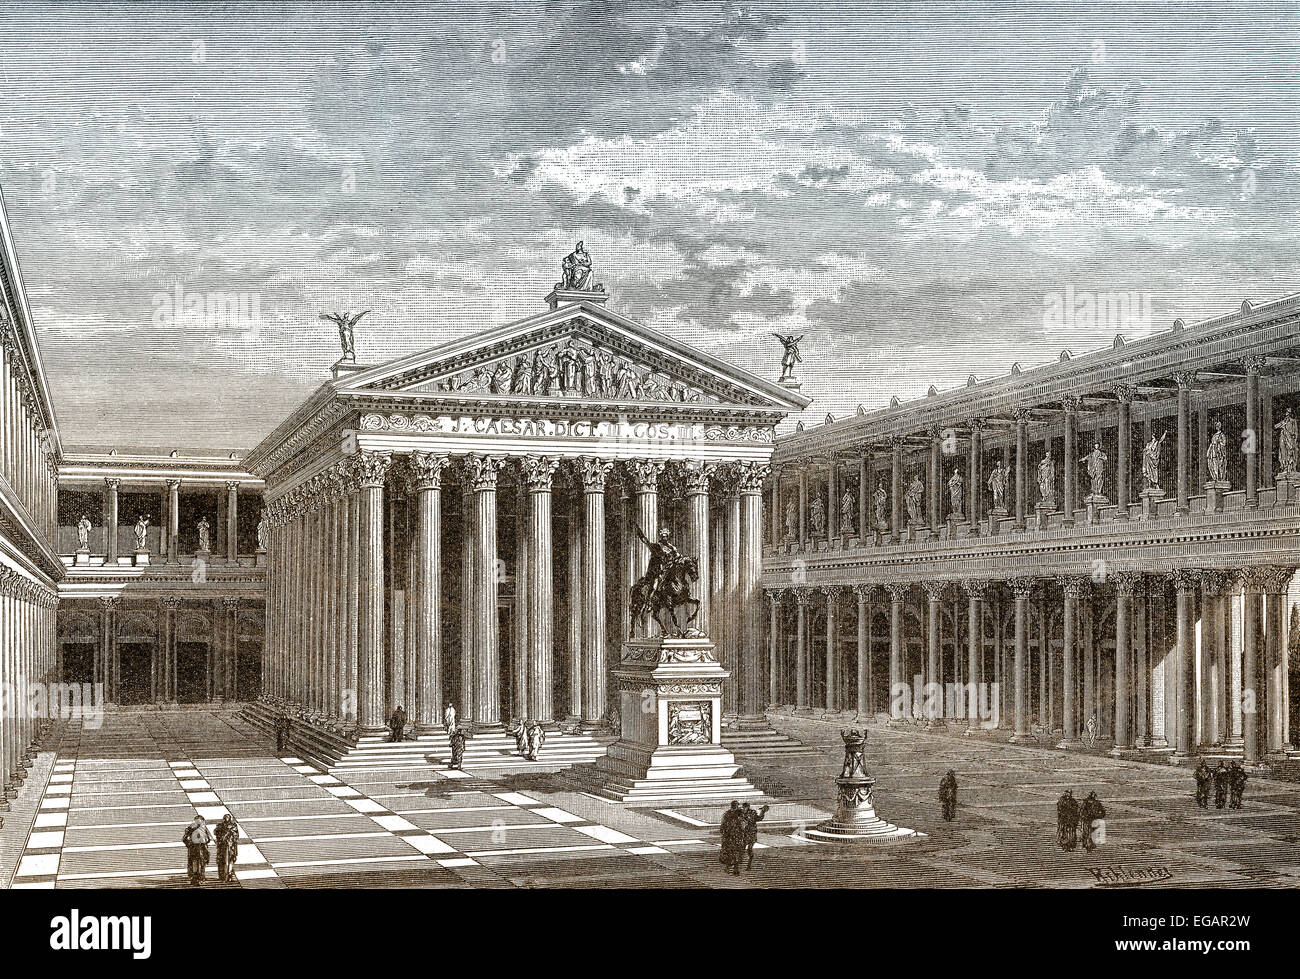 a history of rome an ancient city and julius caesar T he crossing of a small stream in northern italy became one of ancient history  duruy, victor, history of rome  how to cite this article: julius caesar.